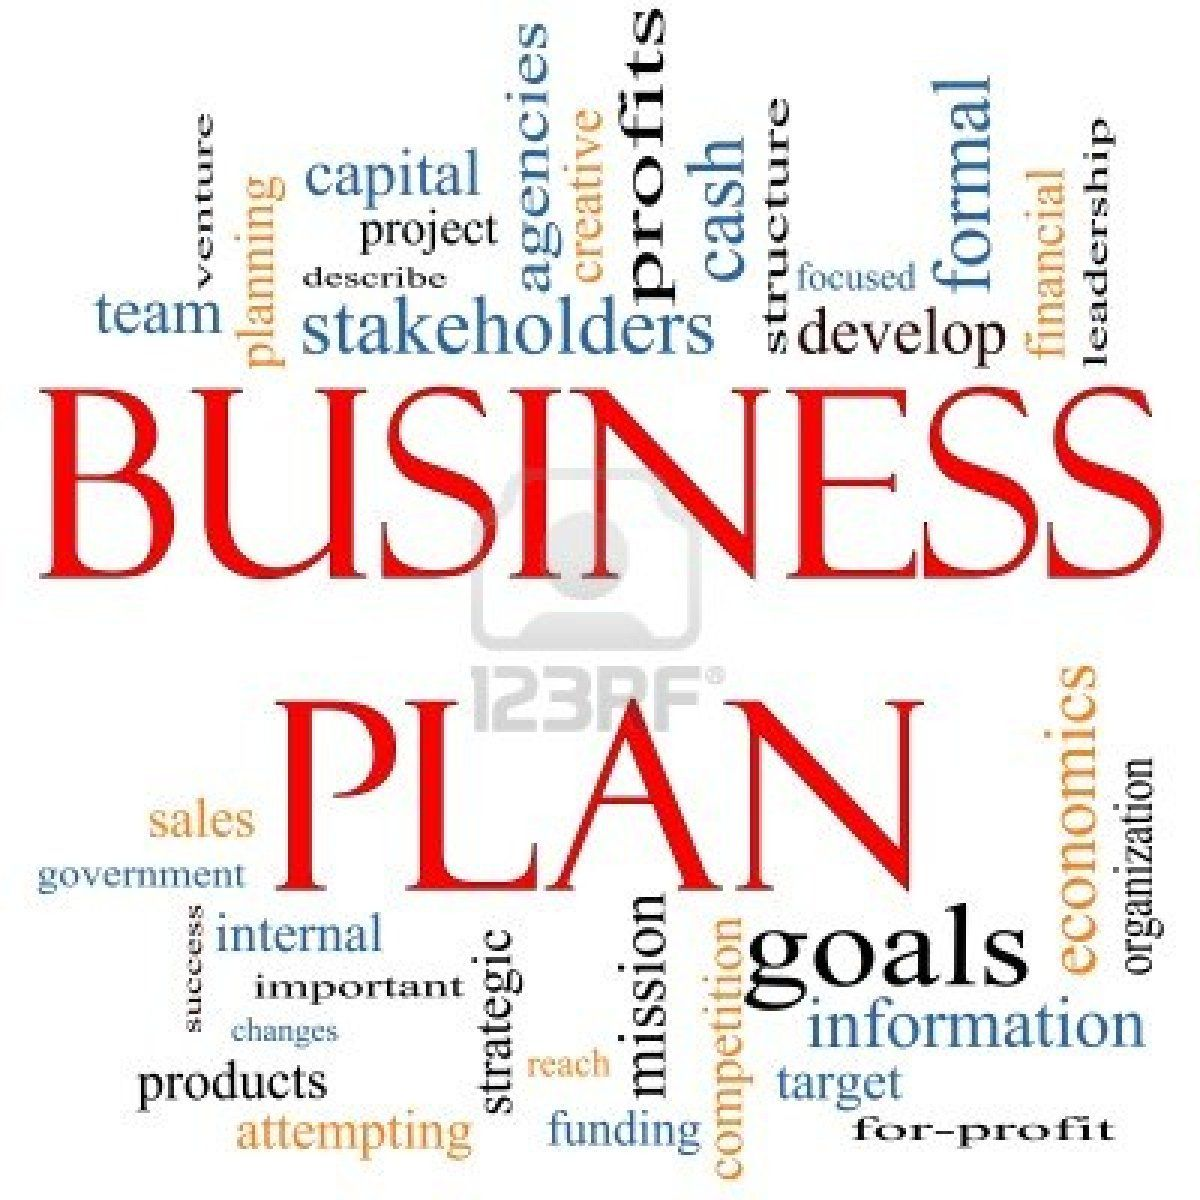 Best Business Plan Writers Website For Masters  Opinion Of  Best Business Plan Writers Website For Masters  Opinion Of Professionals